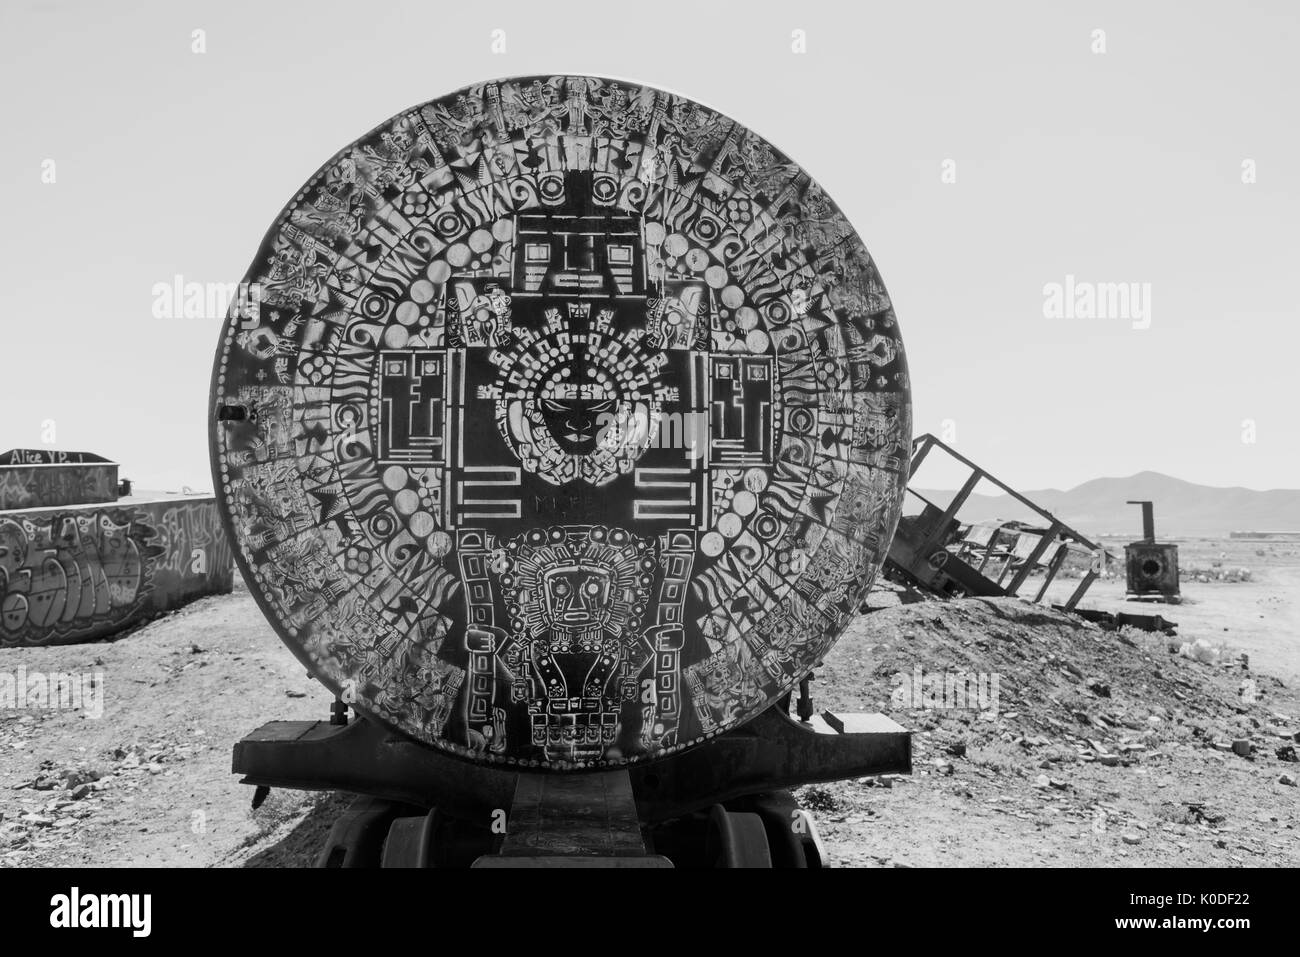 South America, Andes, Altiplano, Bolivia,  Uyuni, Train Cemetery - Stock Image